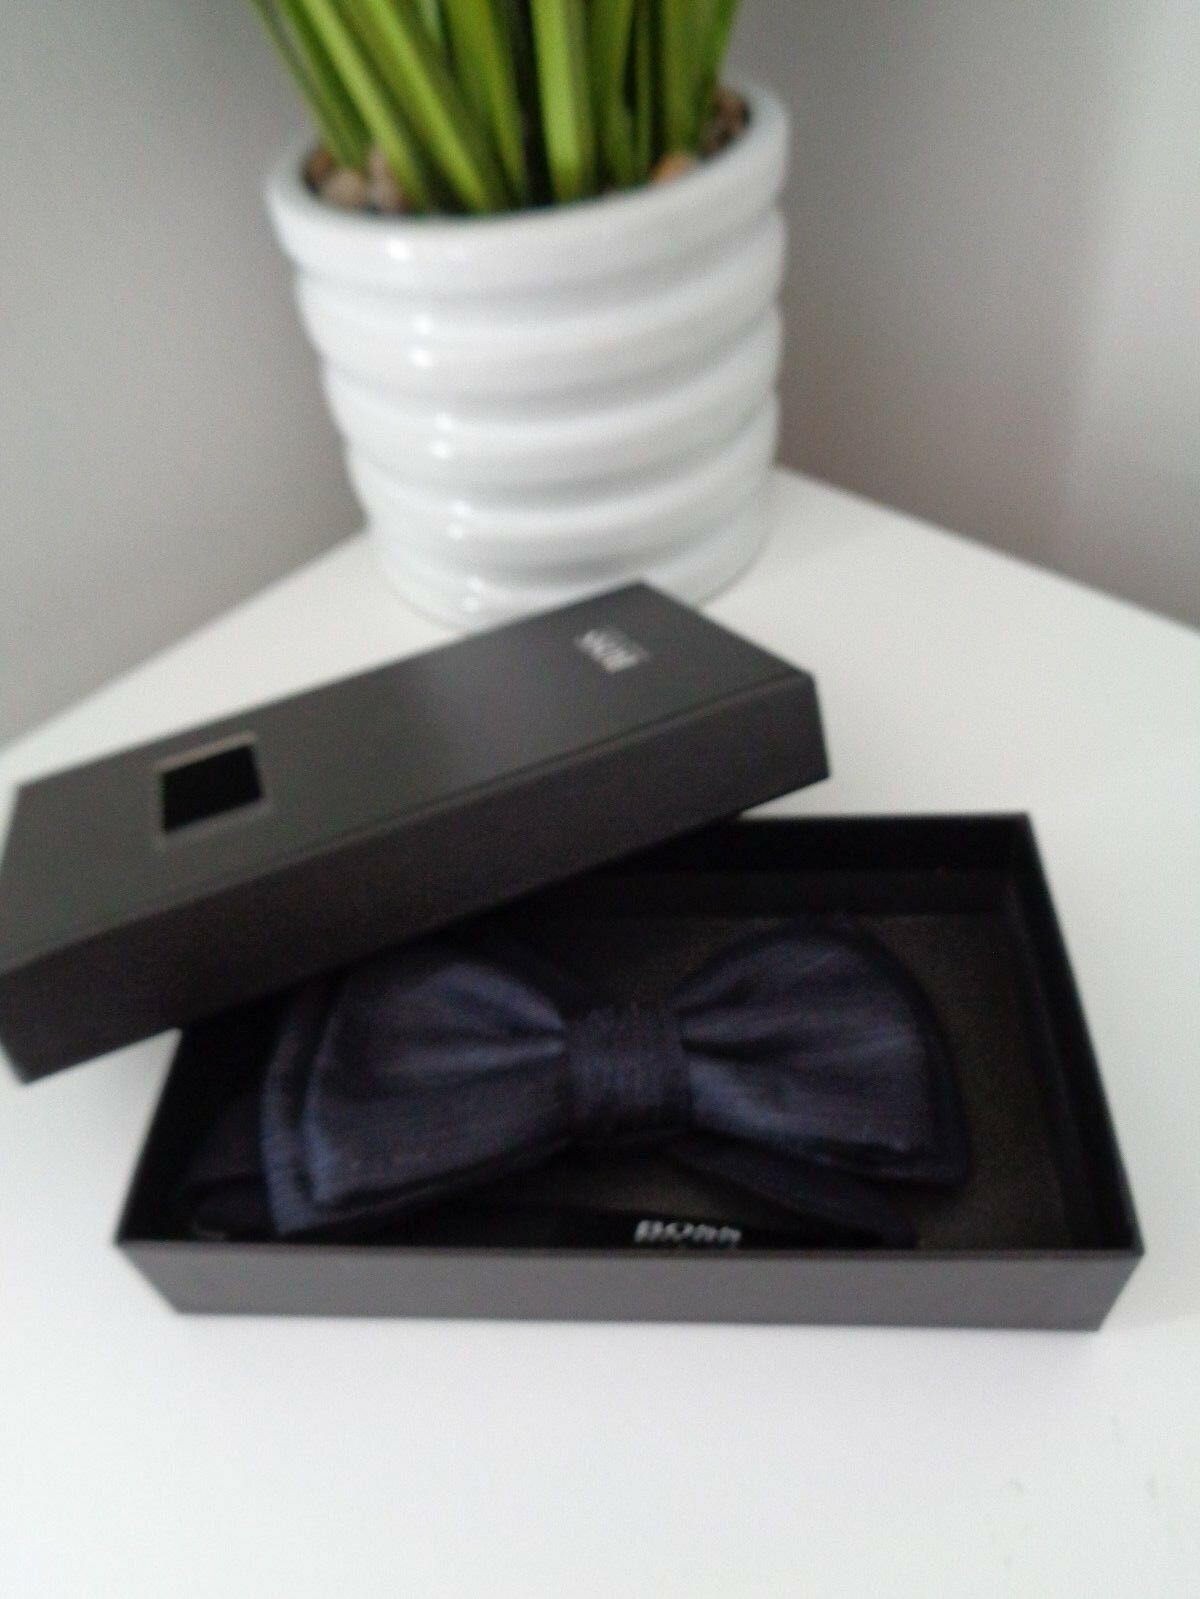 941f4734c679 Hugo Boss Italian Silk & Wool Dark Blue Bow Tie. Gift Idea Prom Save for  sale online | eBay